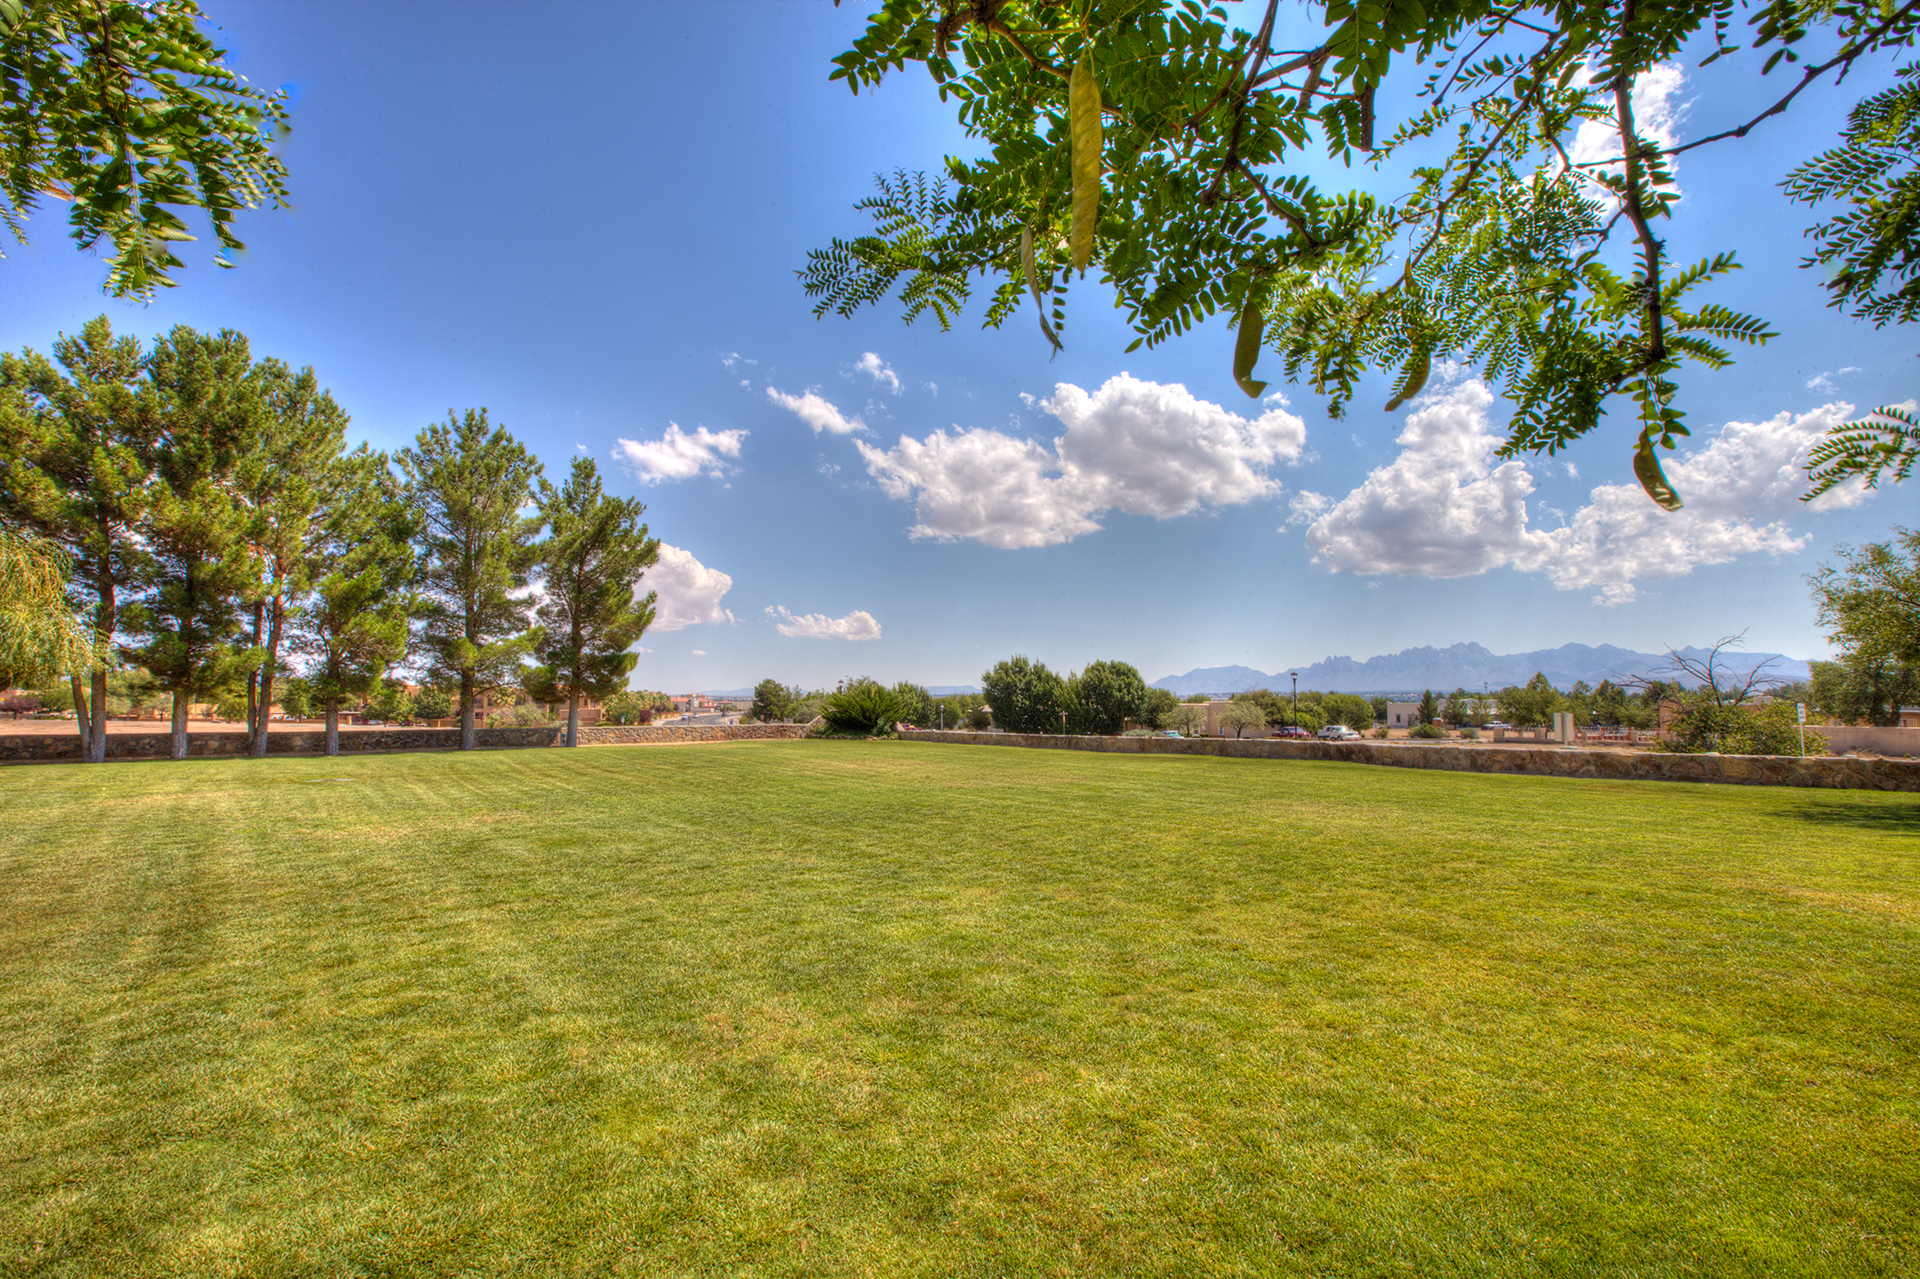 Beautiful outdoor event space on our lawn at D.H. Lescombes Winery & Bistro in Las Cruces gives a great view of the Organ Mountains to the east.